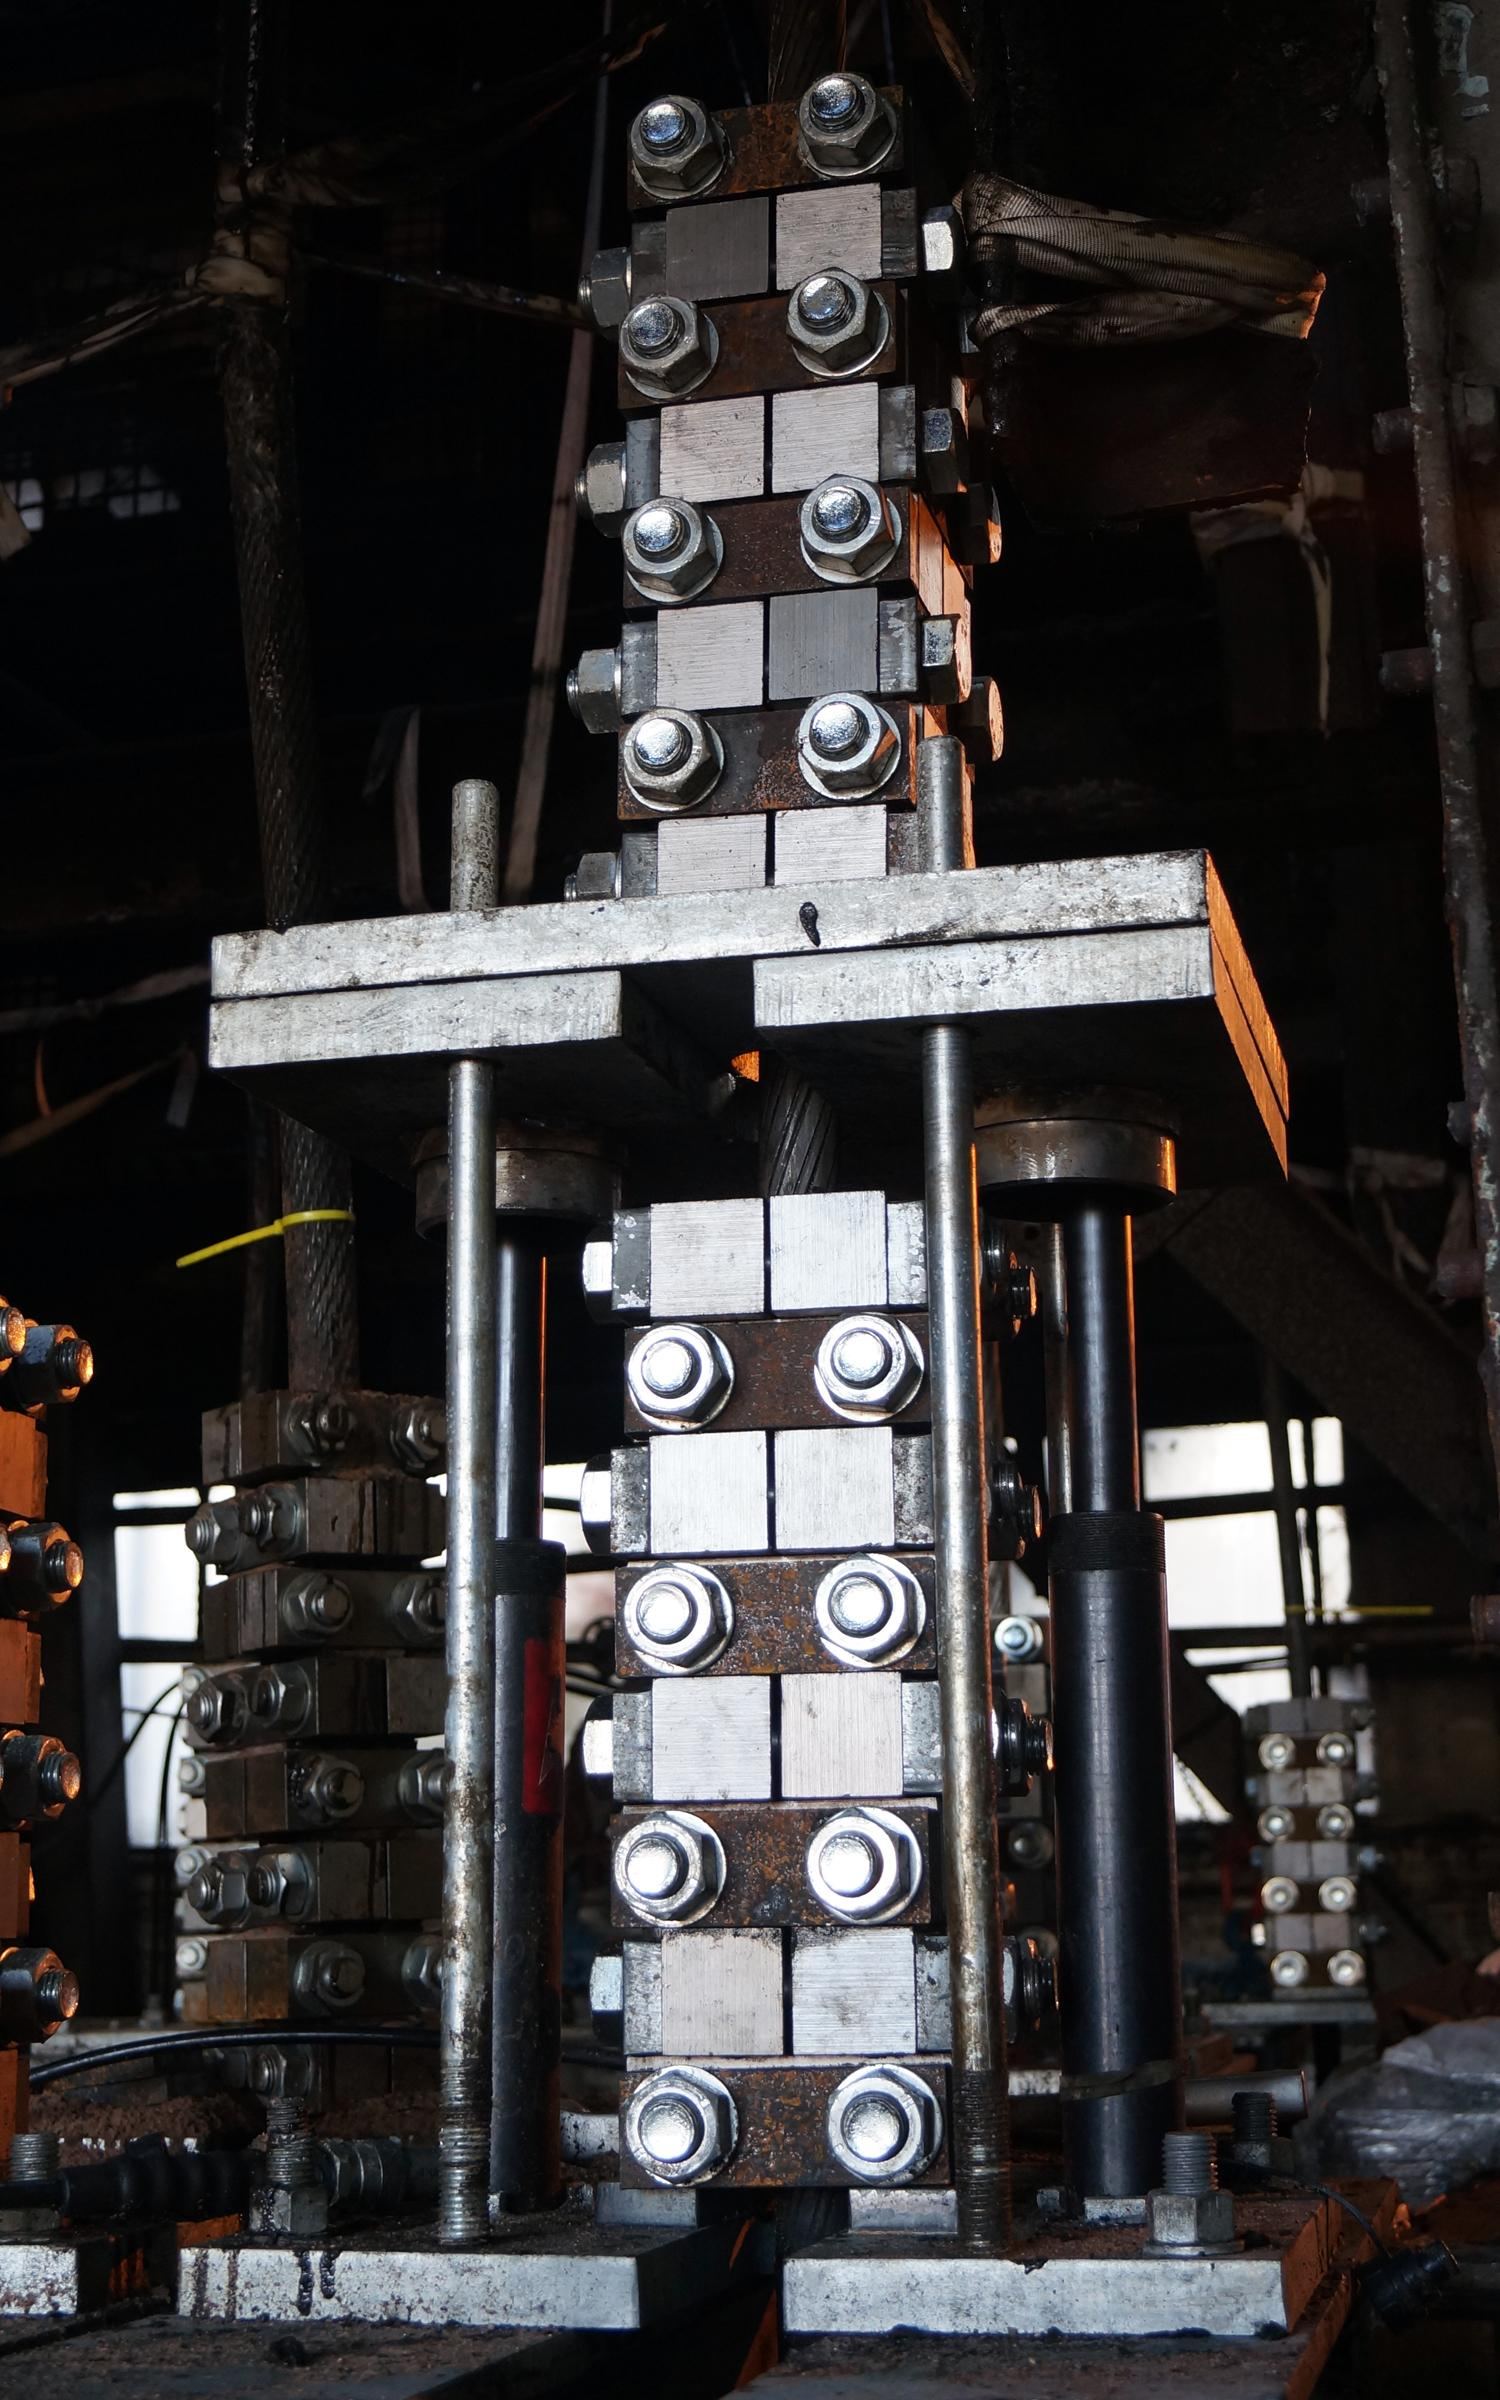 Each of the 14 wire ropes, which weigh 14 tonnes each including weights, is fitted with eight 2-bolt clamps and then raised using a hydraulic jack sufficiently to allow a second set of clamps to be installed below the first